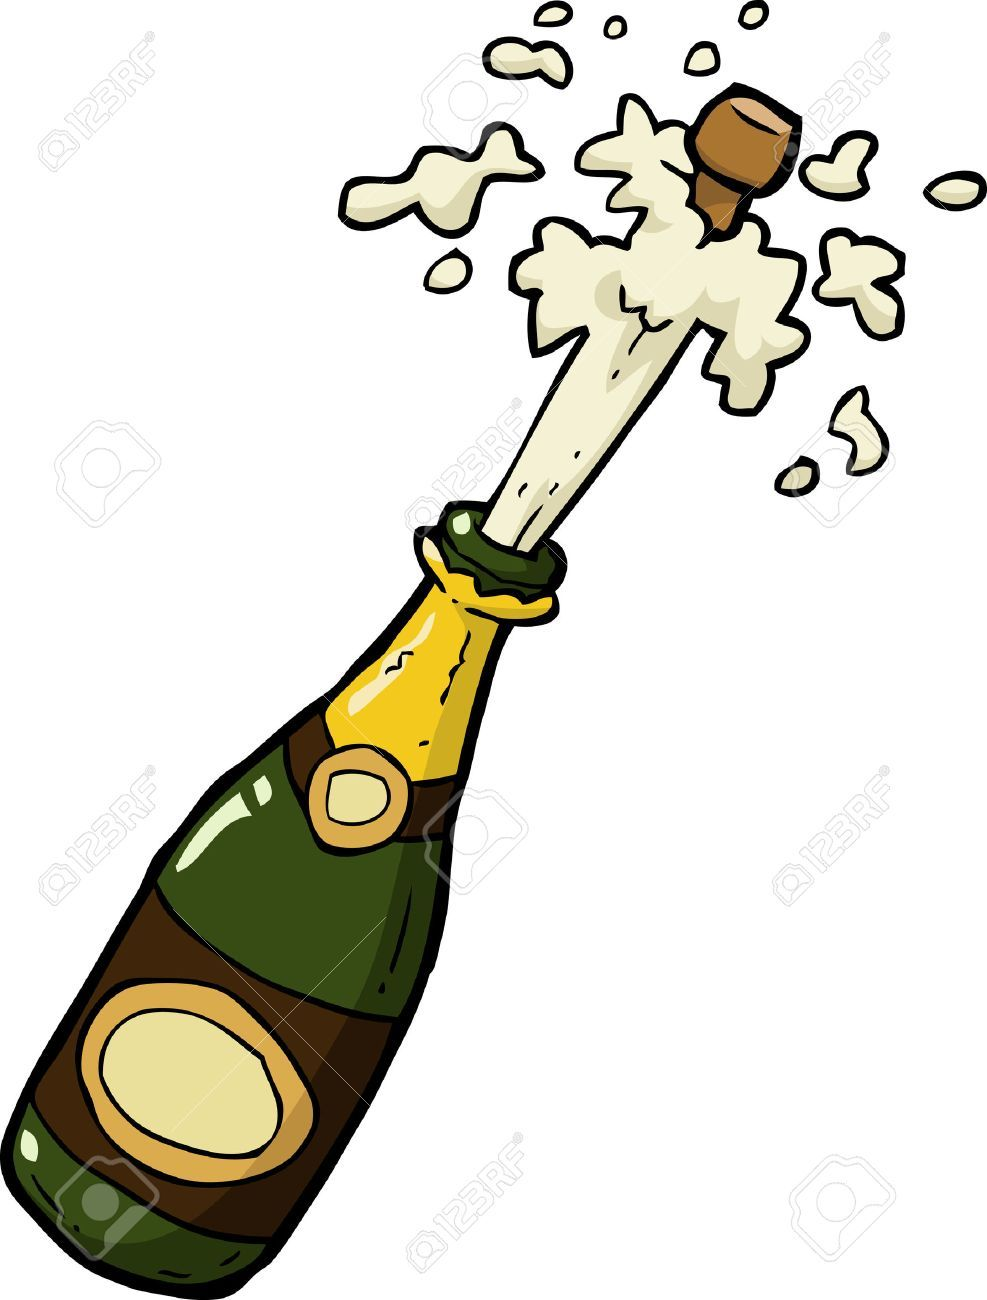 Champagne popping clipart svg library Free clipart champagne bottle popping 8 » Clipart Portal svg library